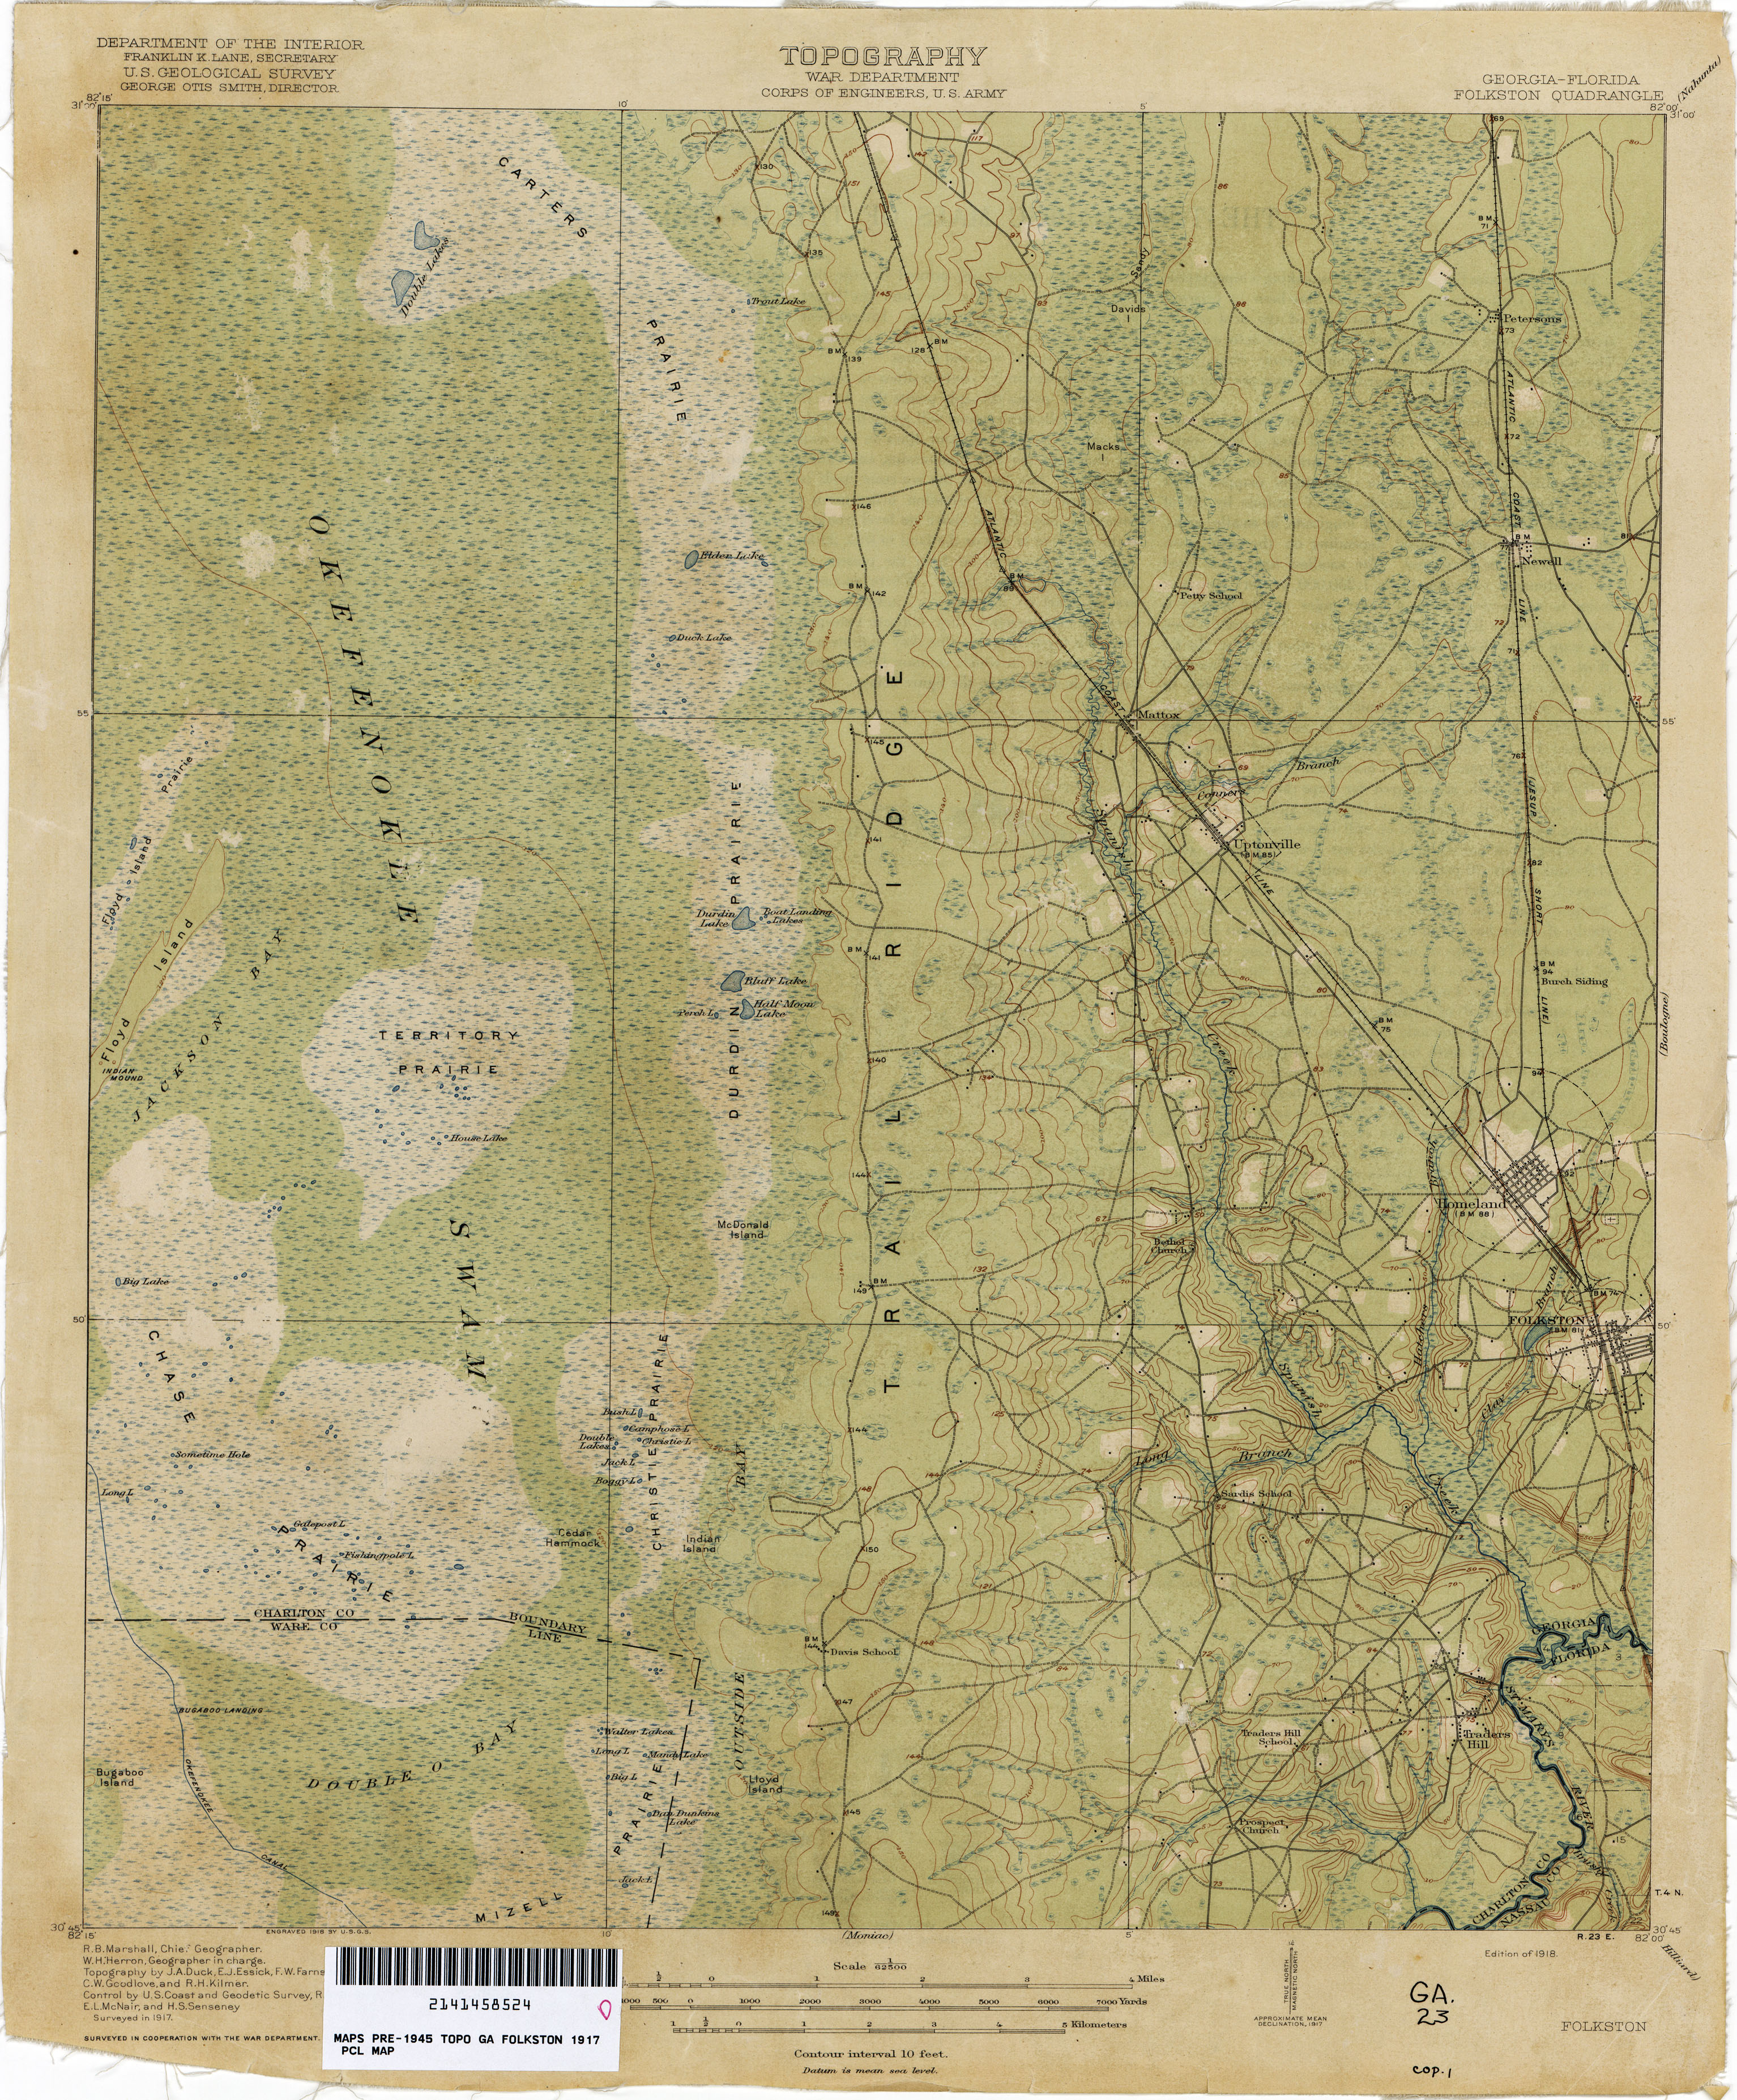 Georgia Florida Map.Florida Historical Topographic Maps Perry Castaneda Map Collection